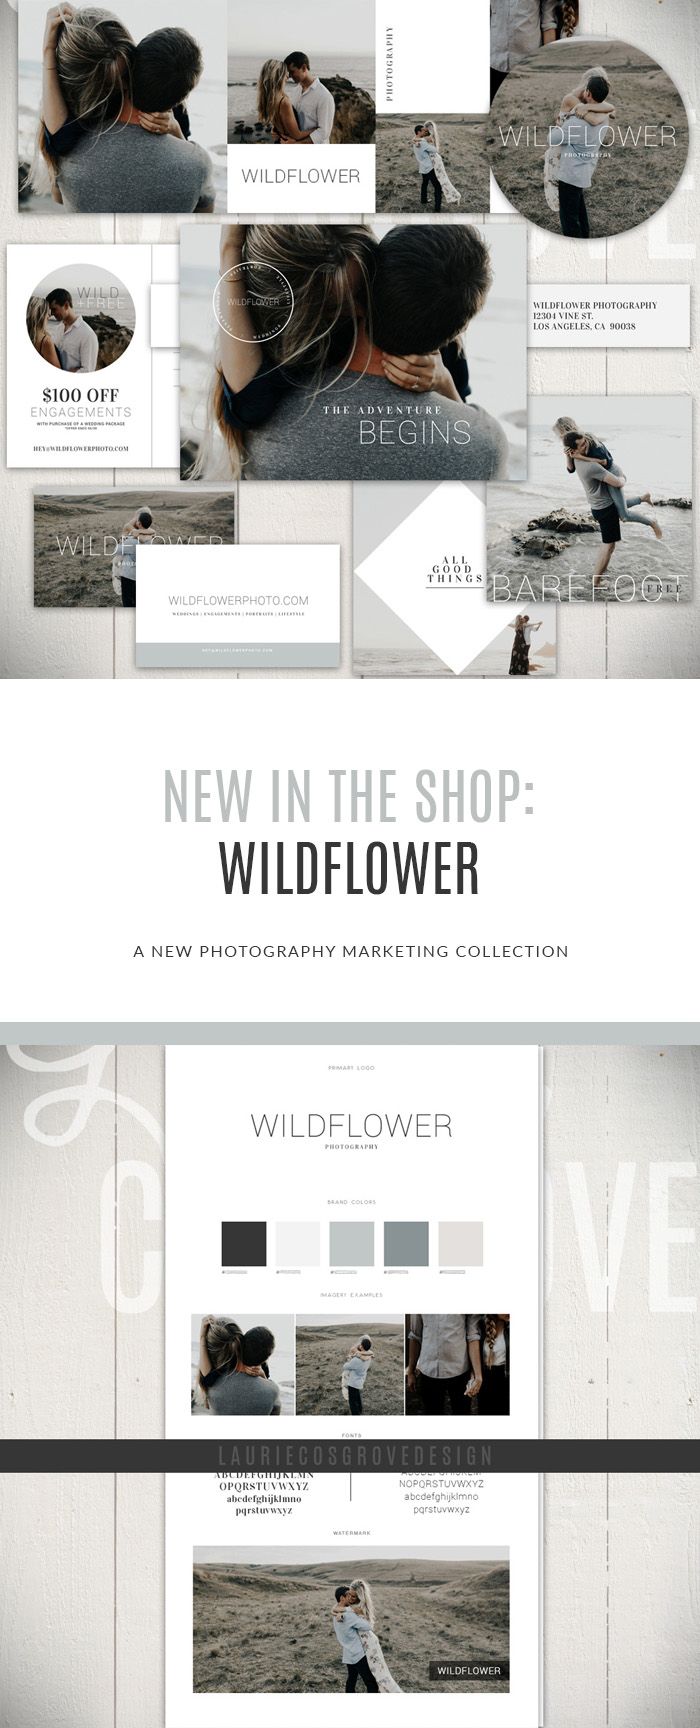 WILDFLOWER: A NEW PHOTOGRAPHY MARKETING COLLECTION